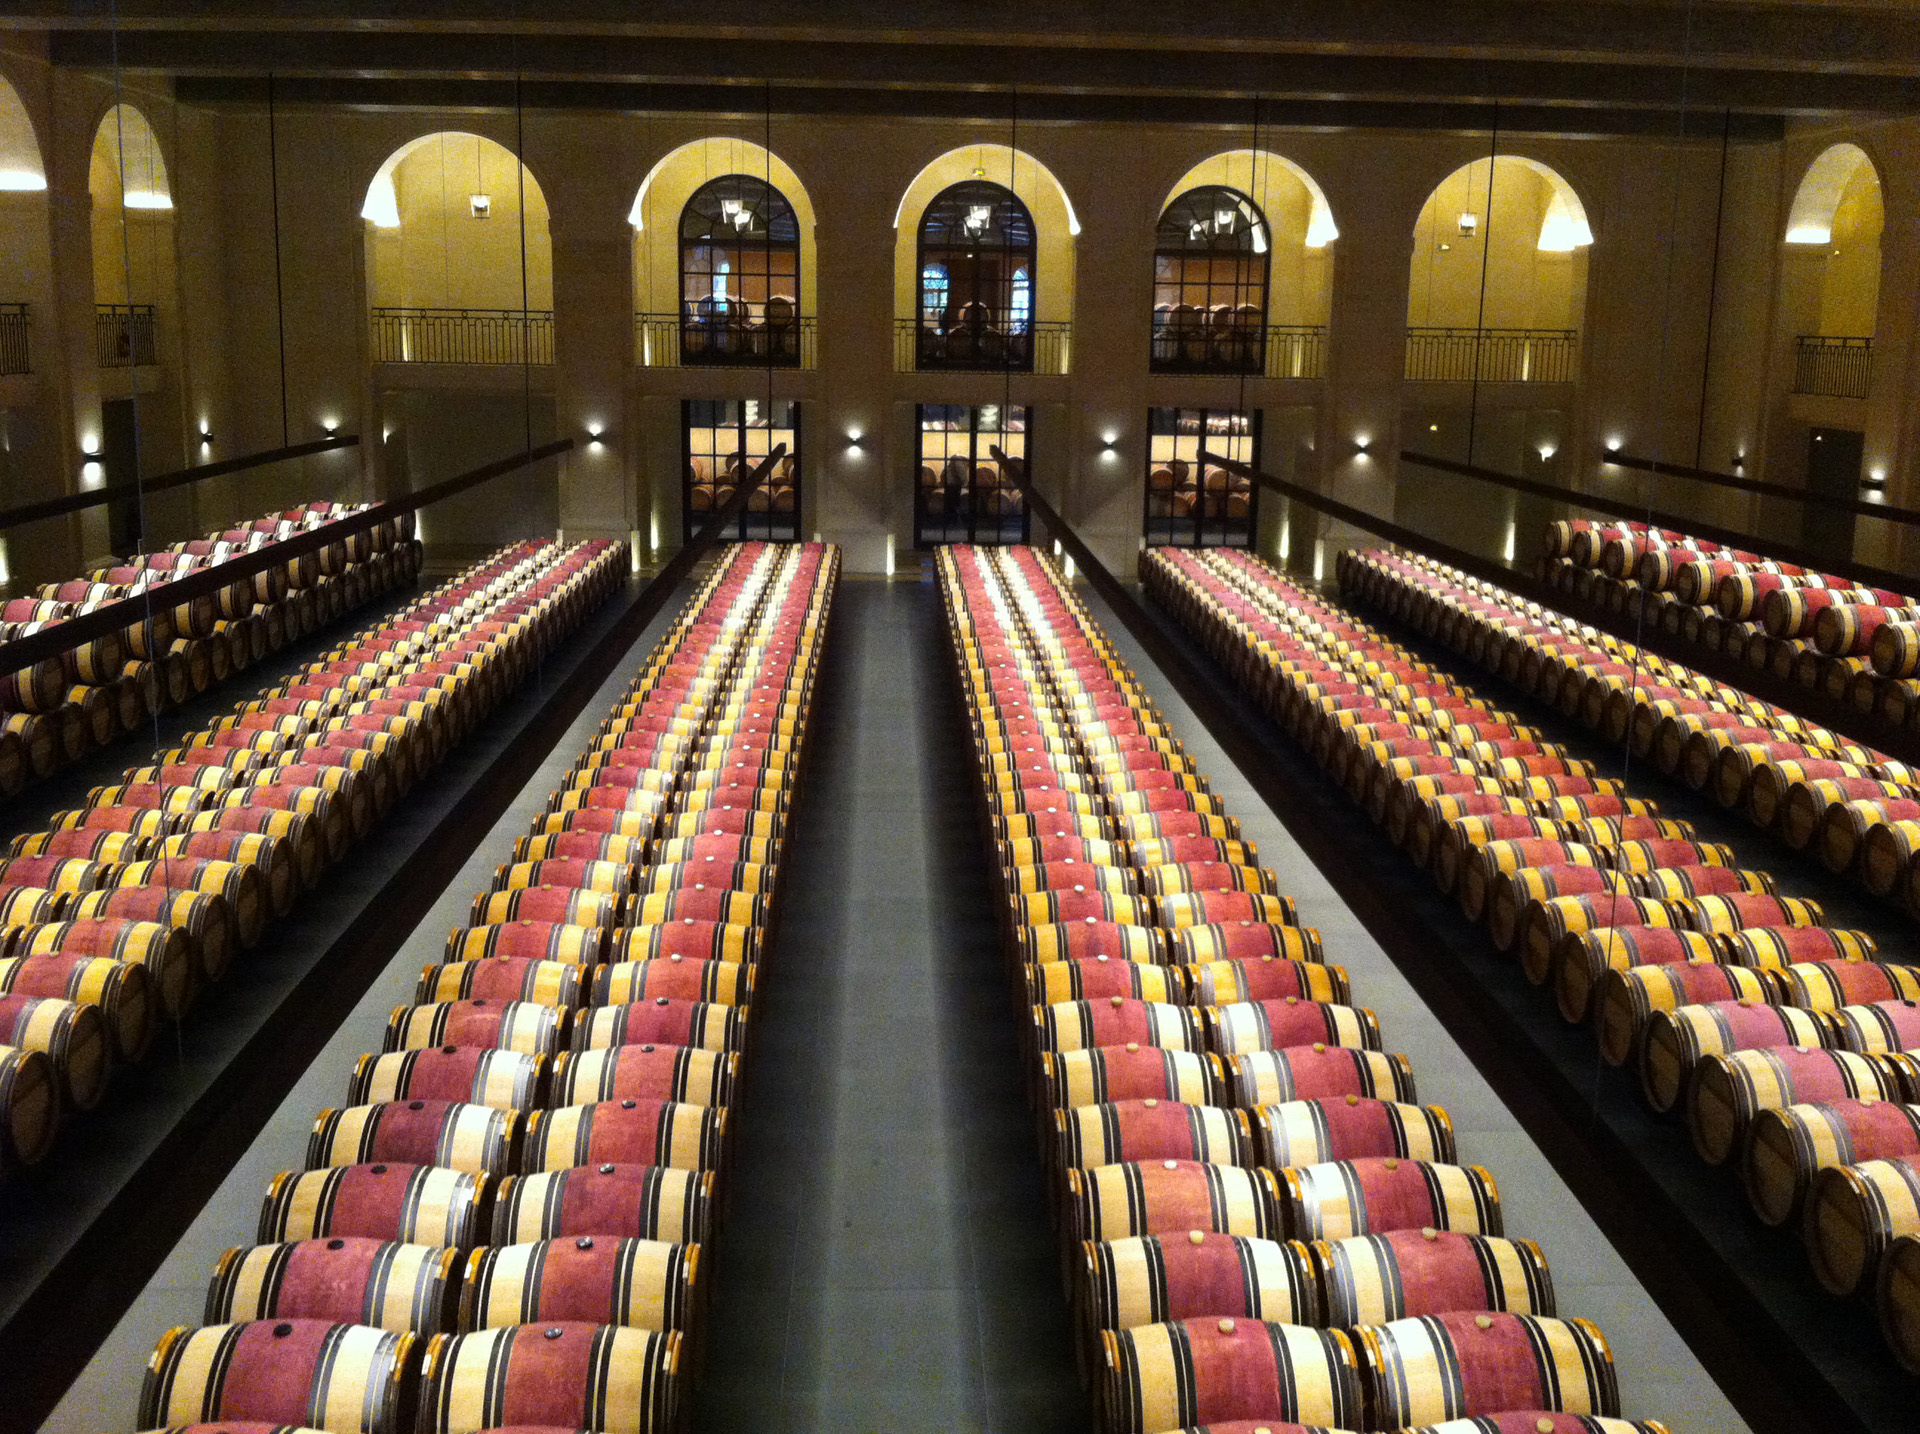 Bordeaux 2020 – headline news from a Liv-ex article